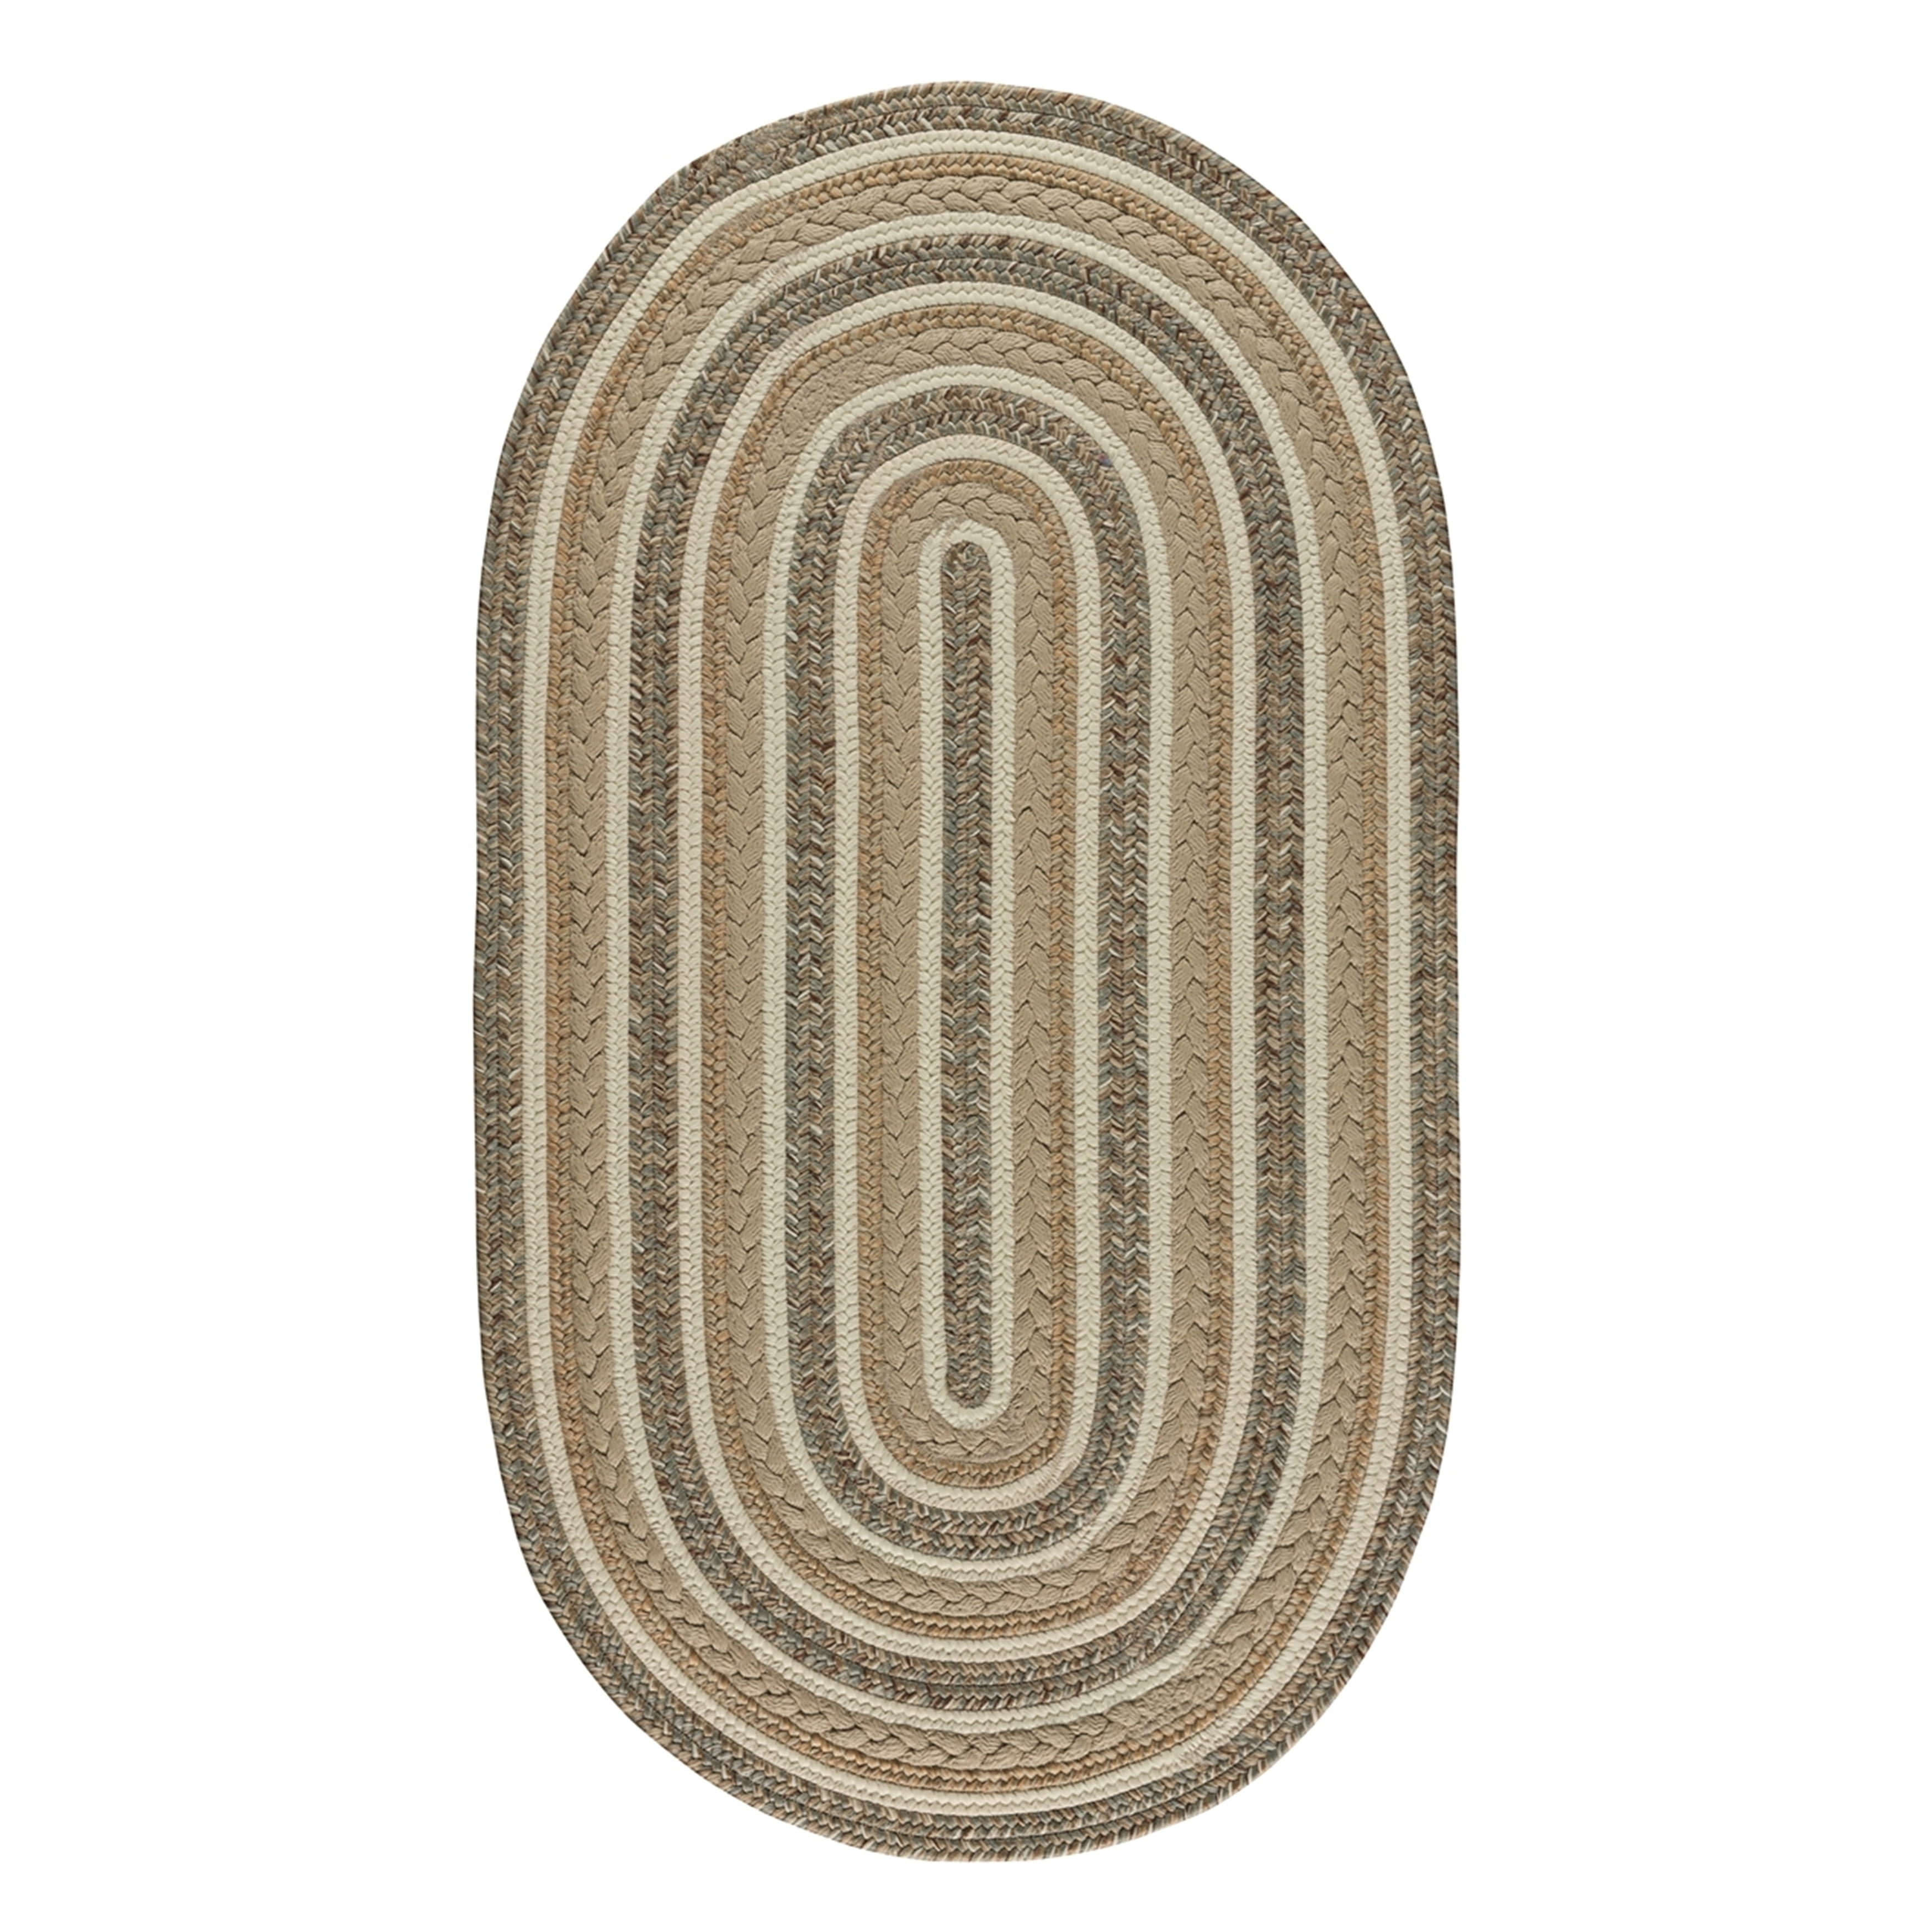 Image of: Shop Capel Rugs Braided Platform Beige Area Rug 24 X 36 Oval Overstock 25720740